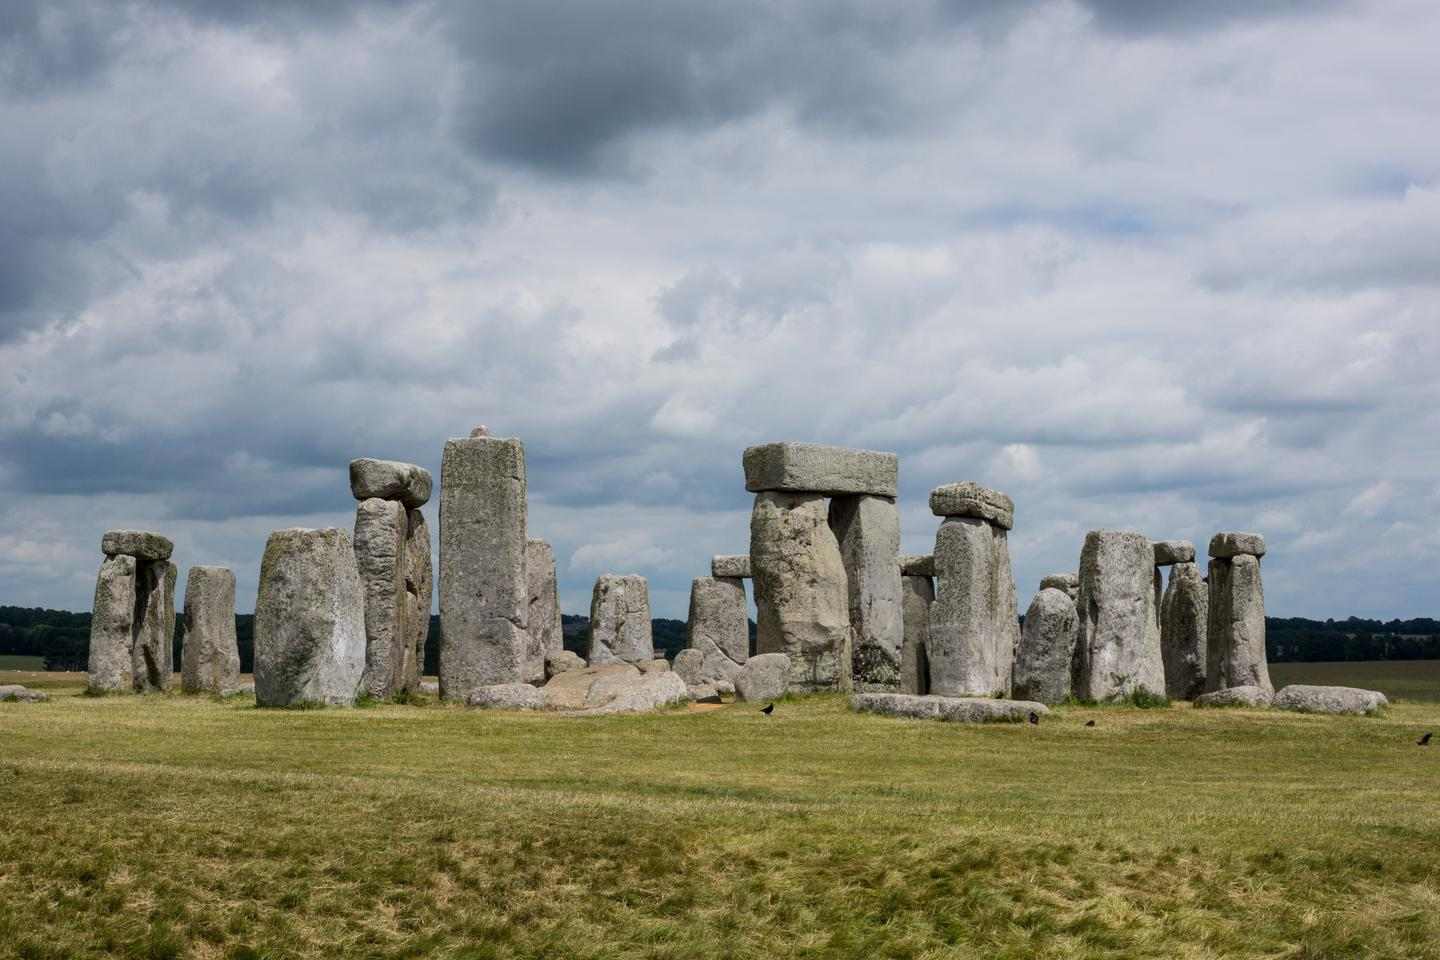 Lard may have greased the skids used to haul the giant megaliths of Stonehenge